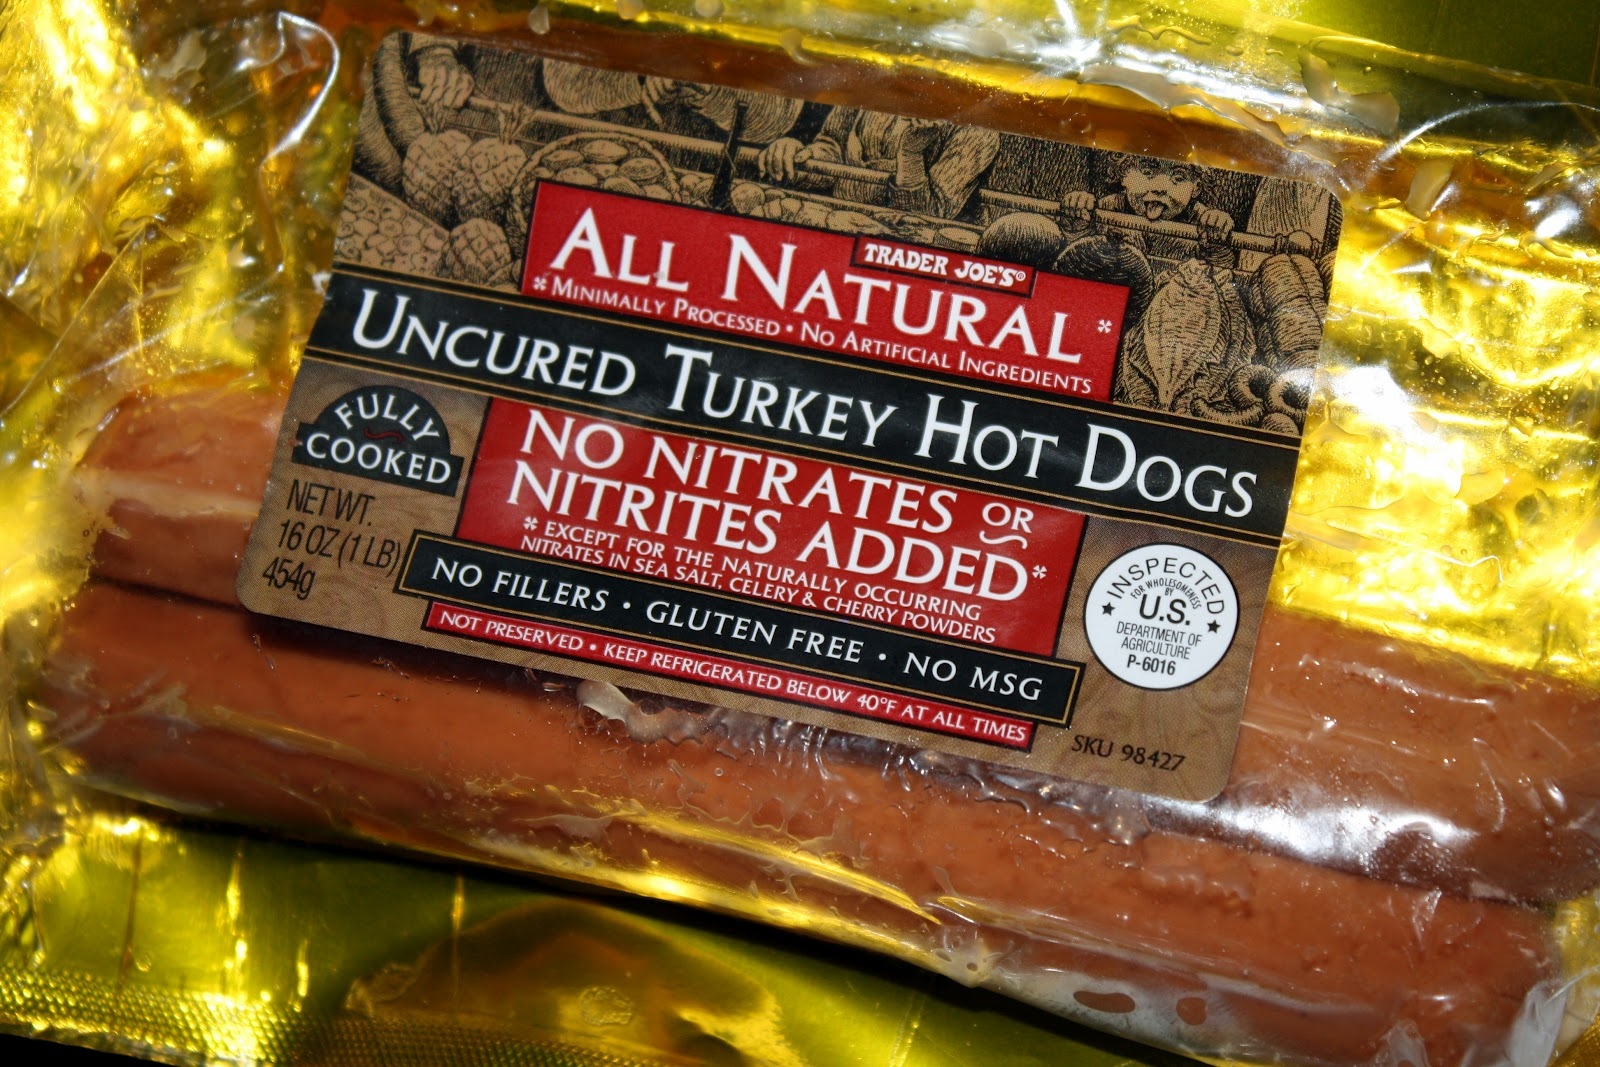 Trader Joe's Uncured All Beef Hot Dogs: Calories ... |Trader Joes Hot Dogs